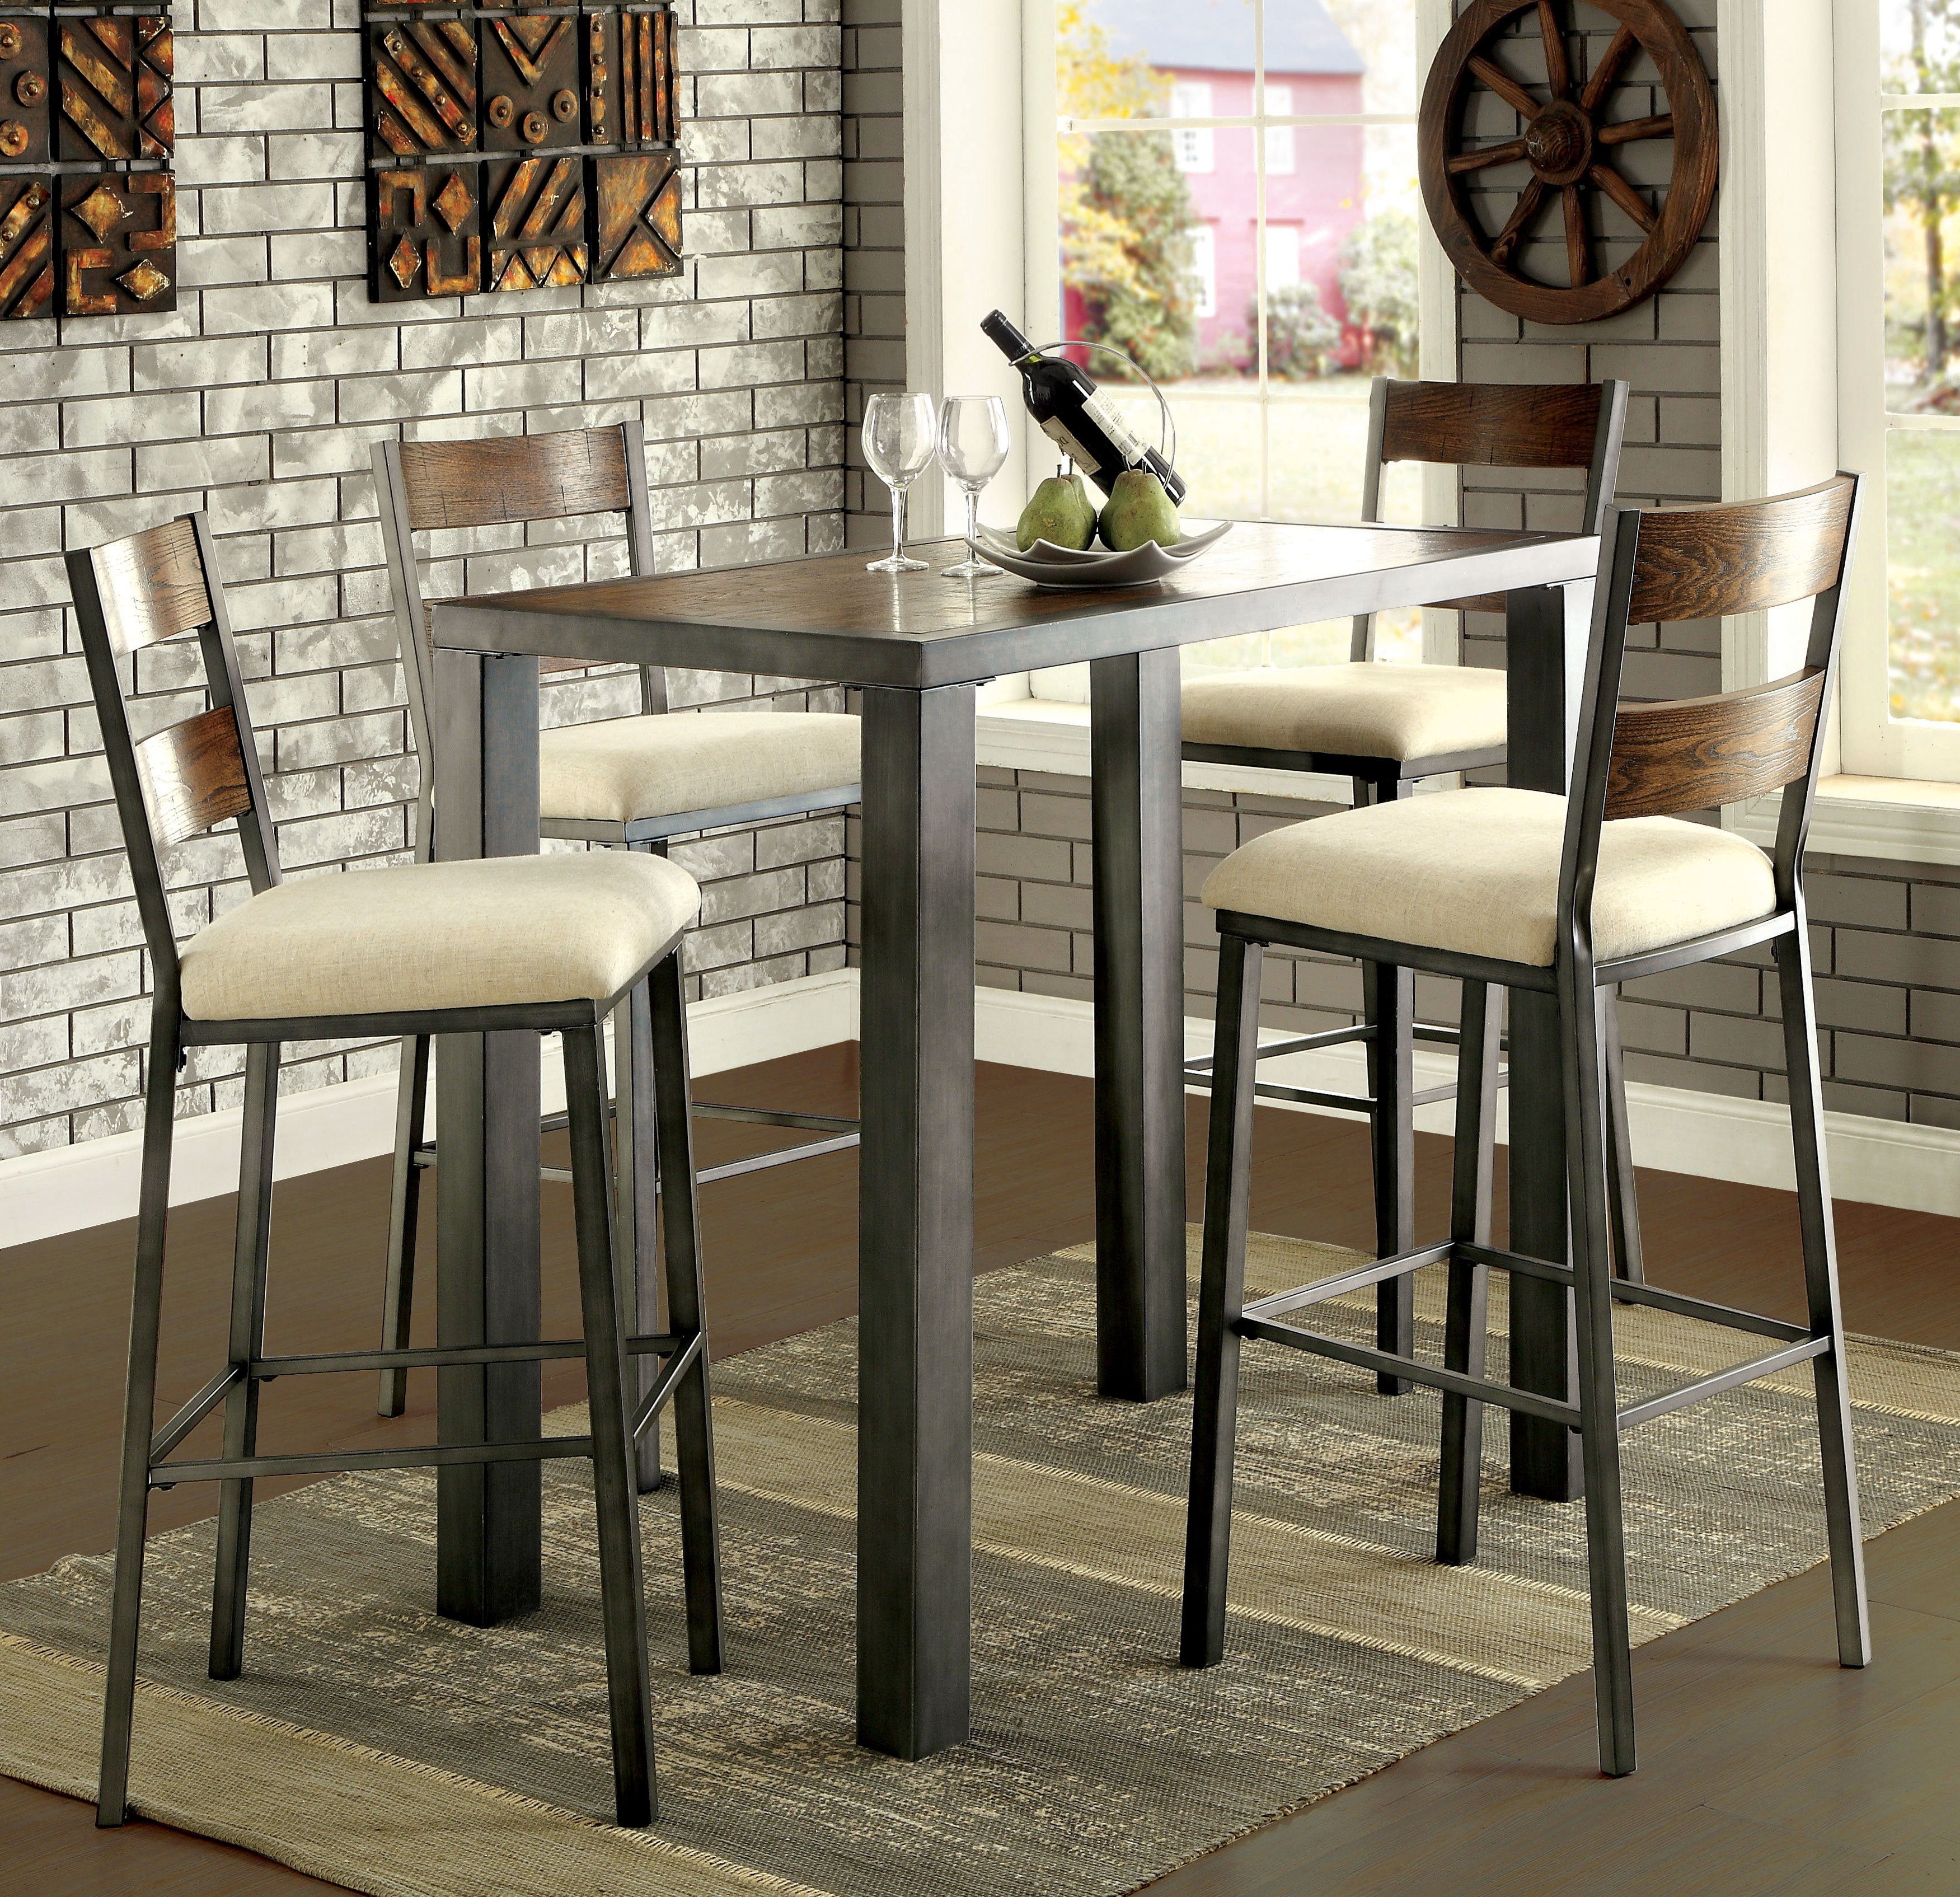 Wayfair With Regard To Biggs 5 Piece Counter Height Solid Wood Dining Sets (Set Of 5) (View 4 of 25)